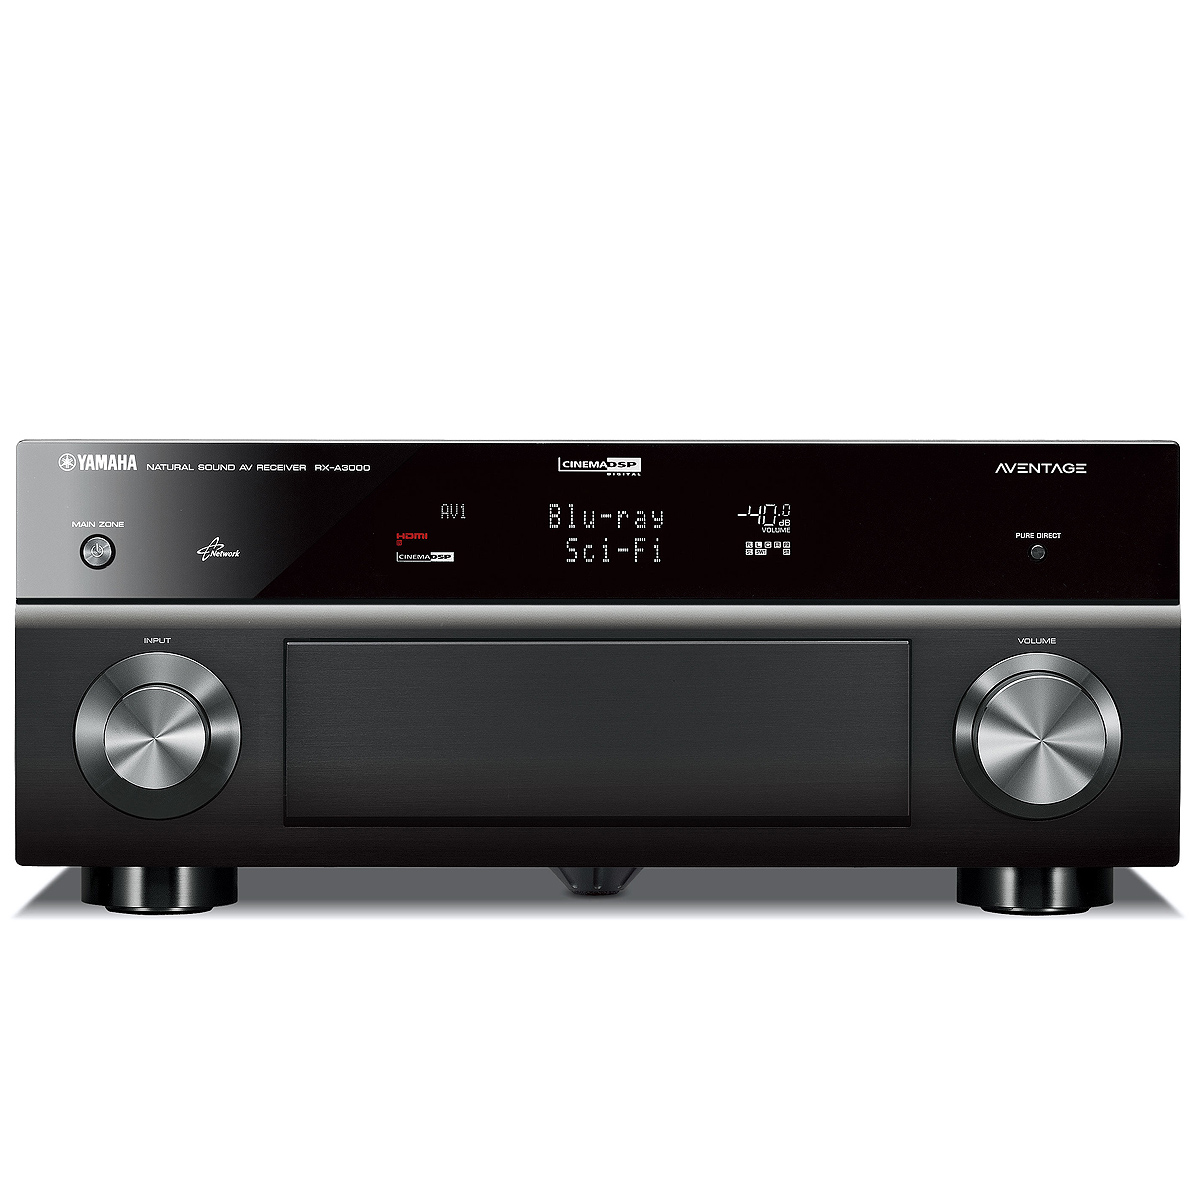 Yamaha RX-A3000 Aventage 11 2 Networking A/V Receiver Review